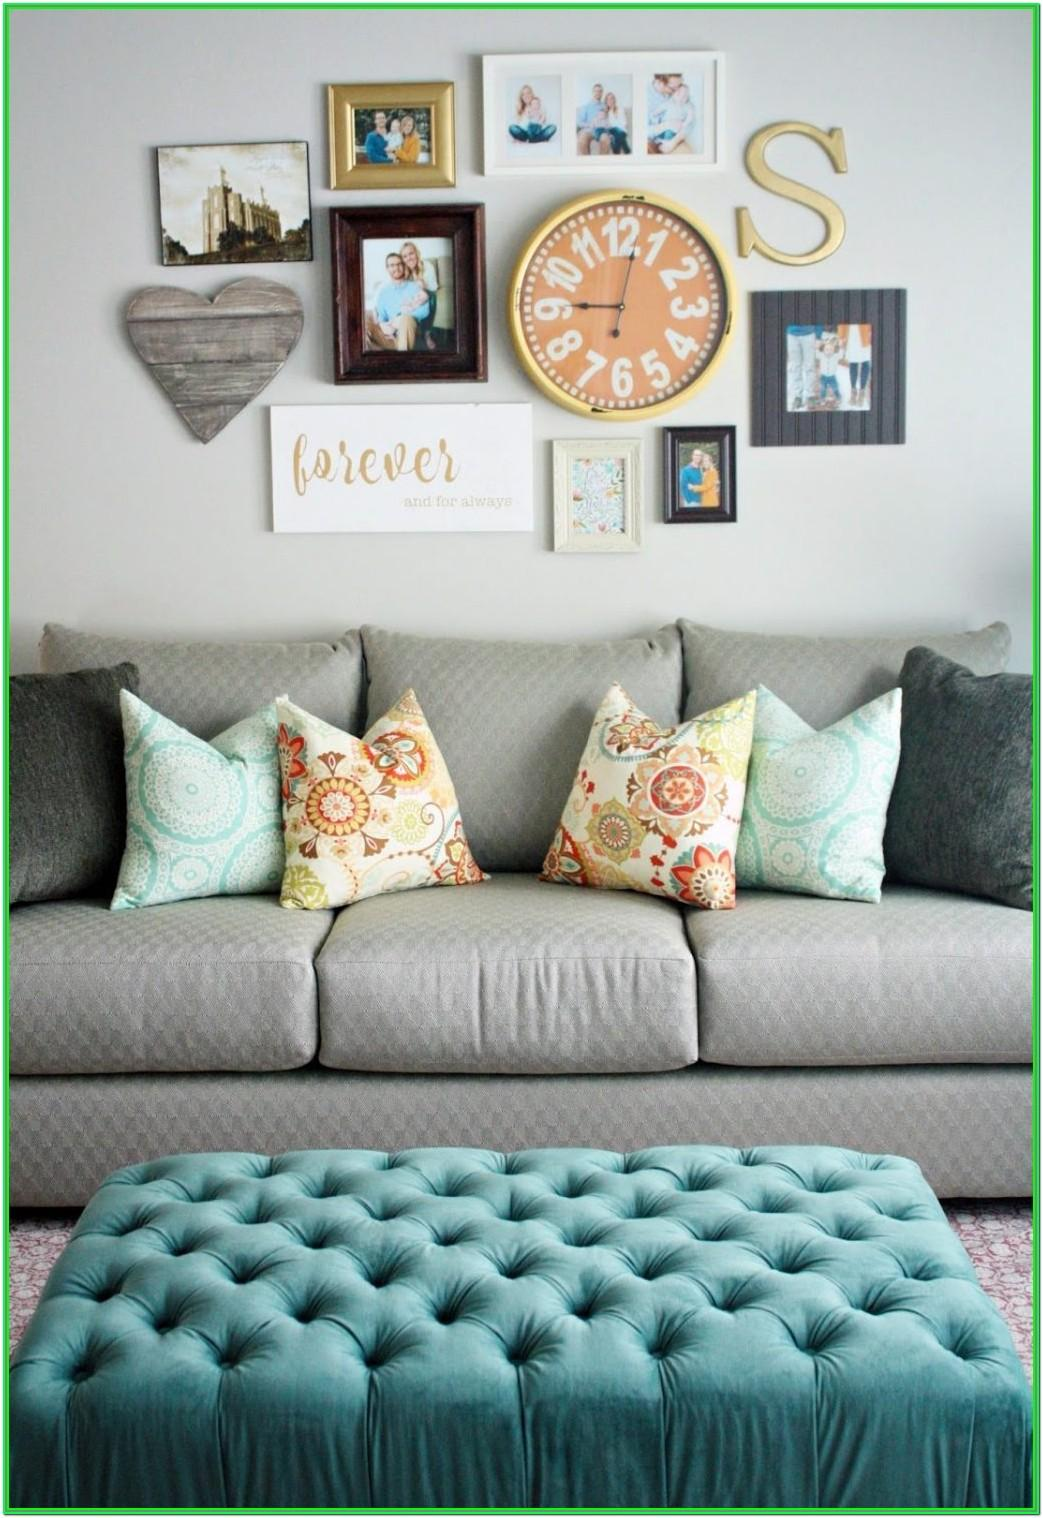 Living Room Mirror Collage Wall Ideas